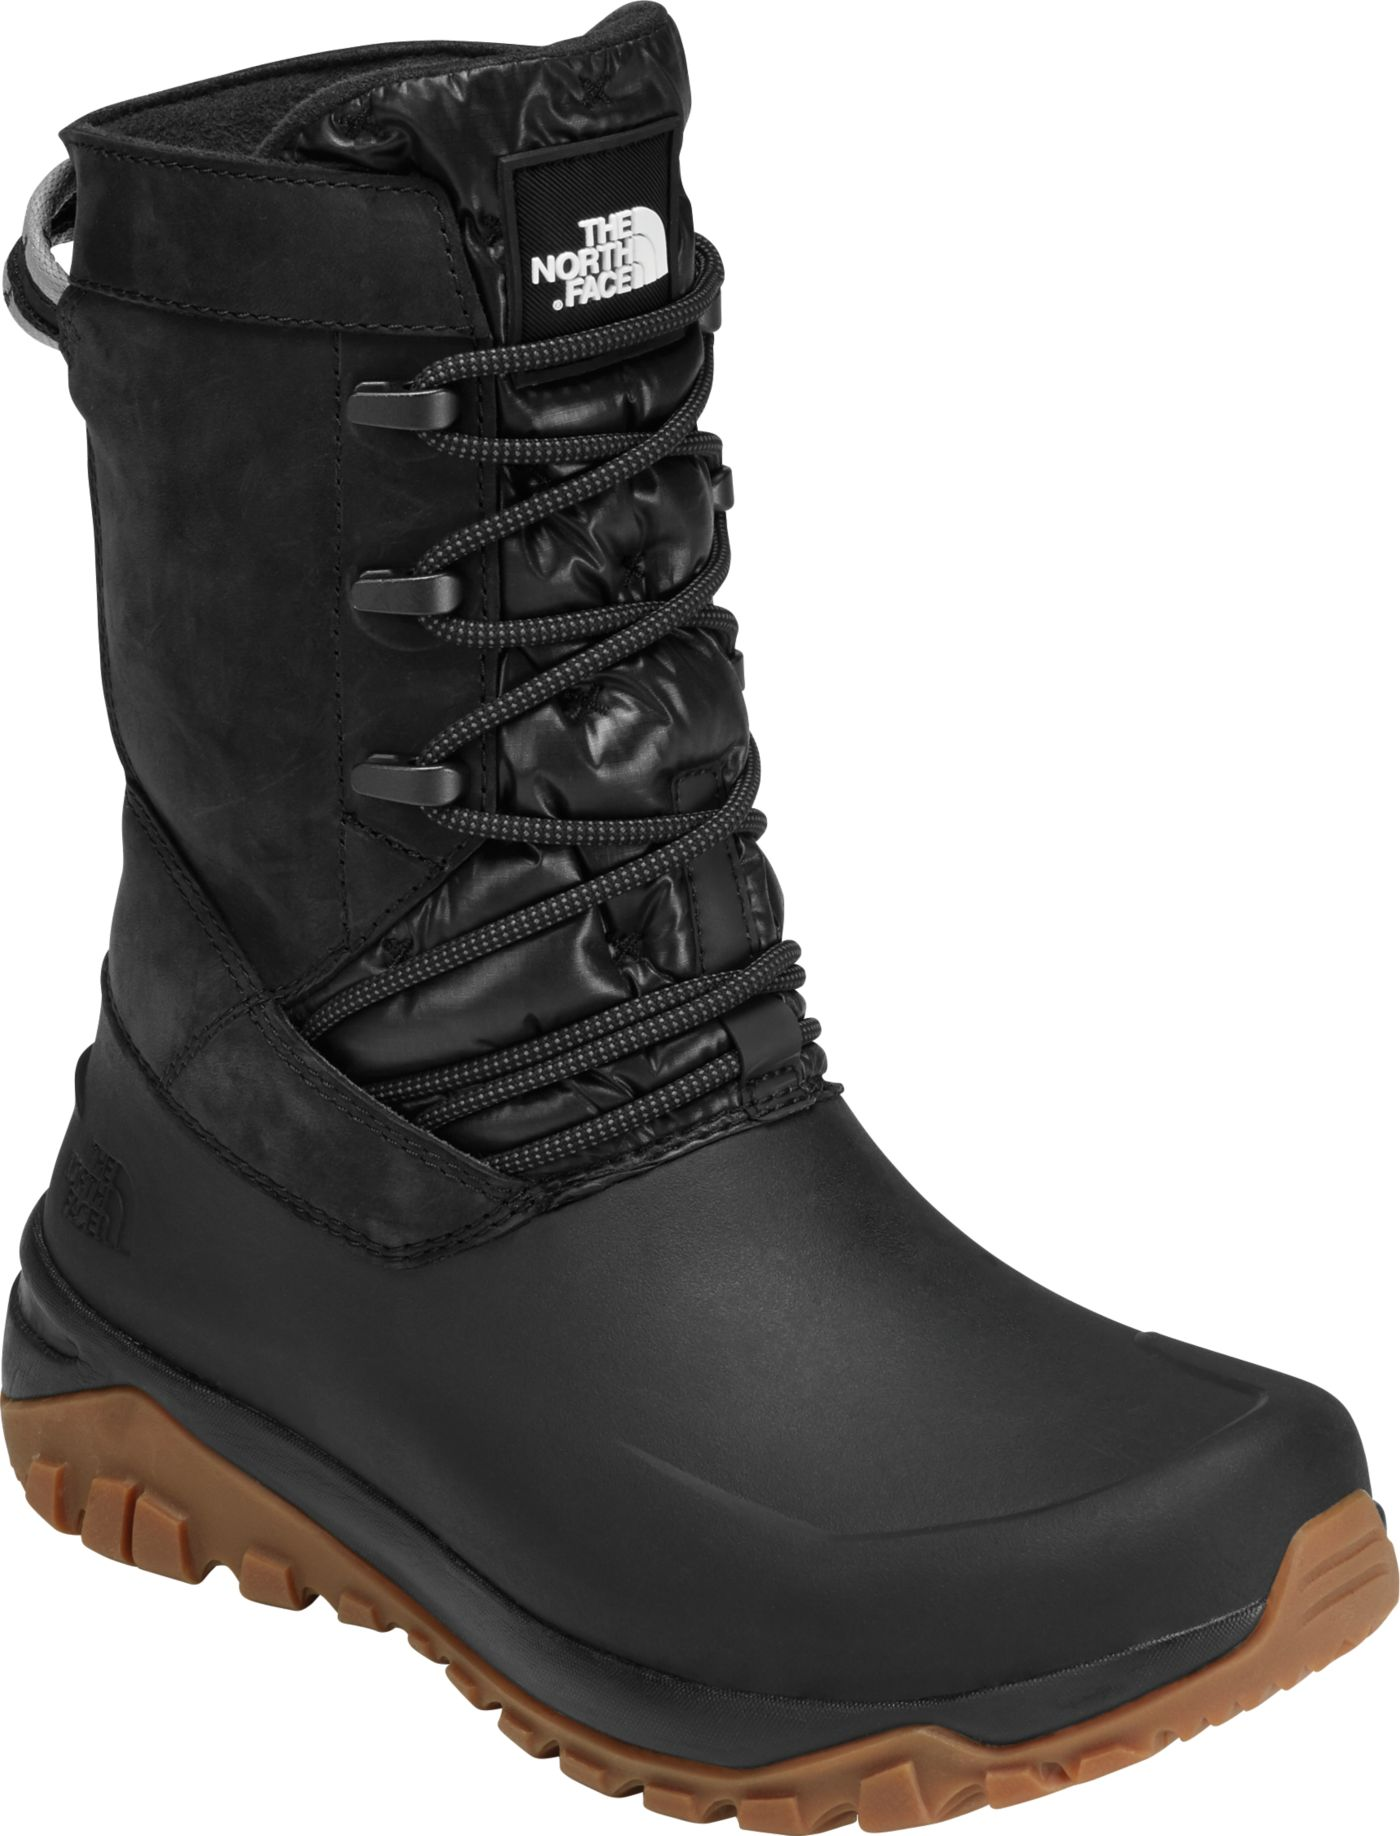 The North Face Women's Yukonia Mid 200g Waterproof Winter Boots